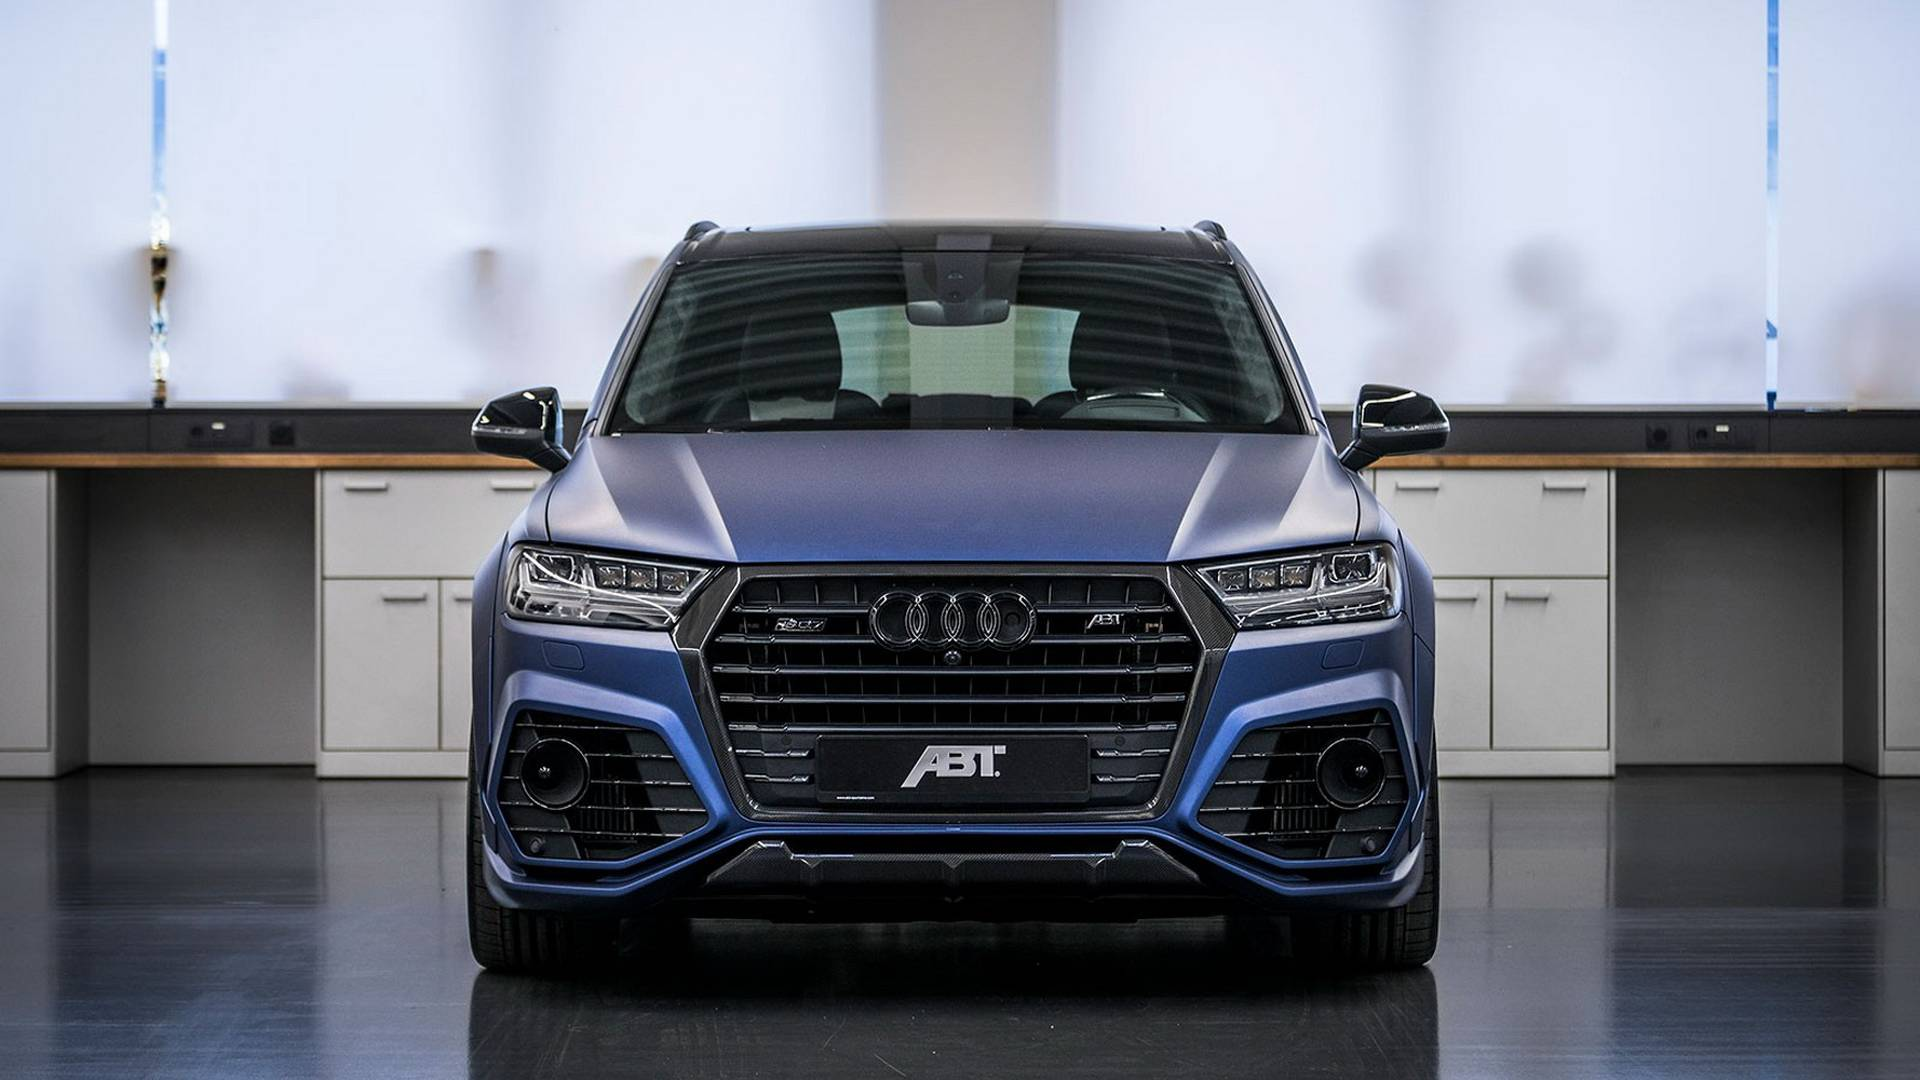 ABT Sportsline plans to issue a total of 10 such Audi SQ7 vehicles, each priced at €216,000 and above